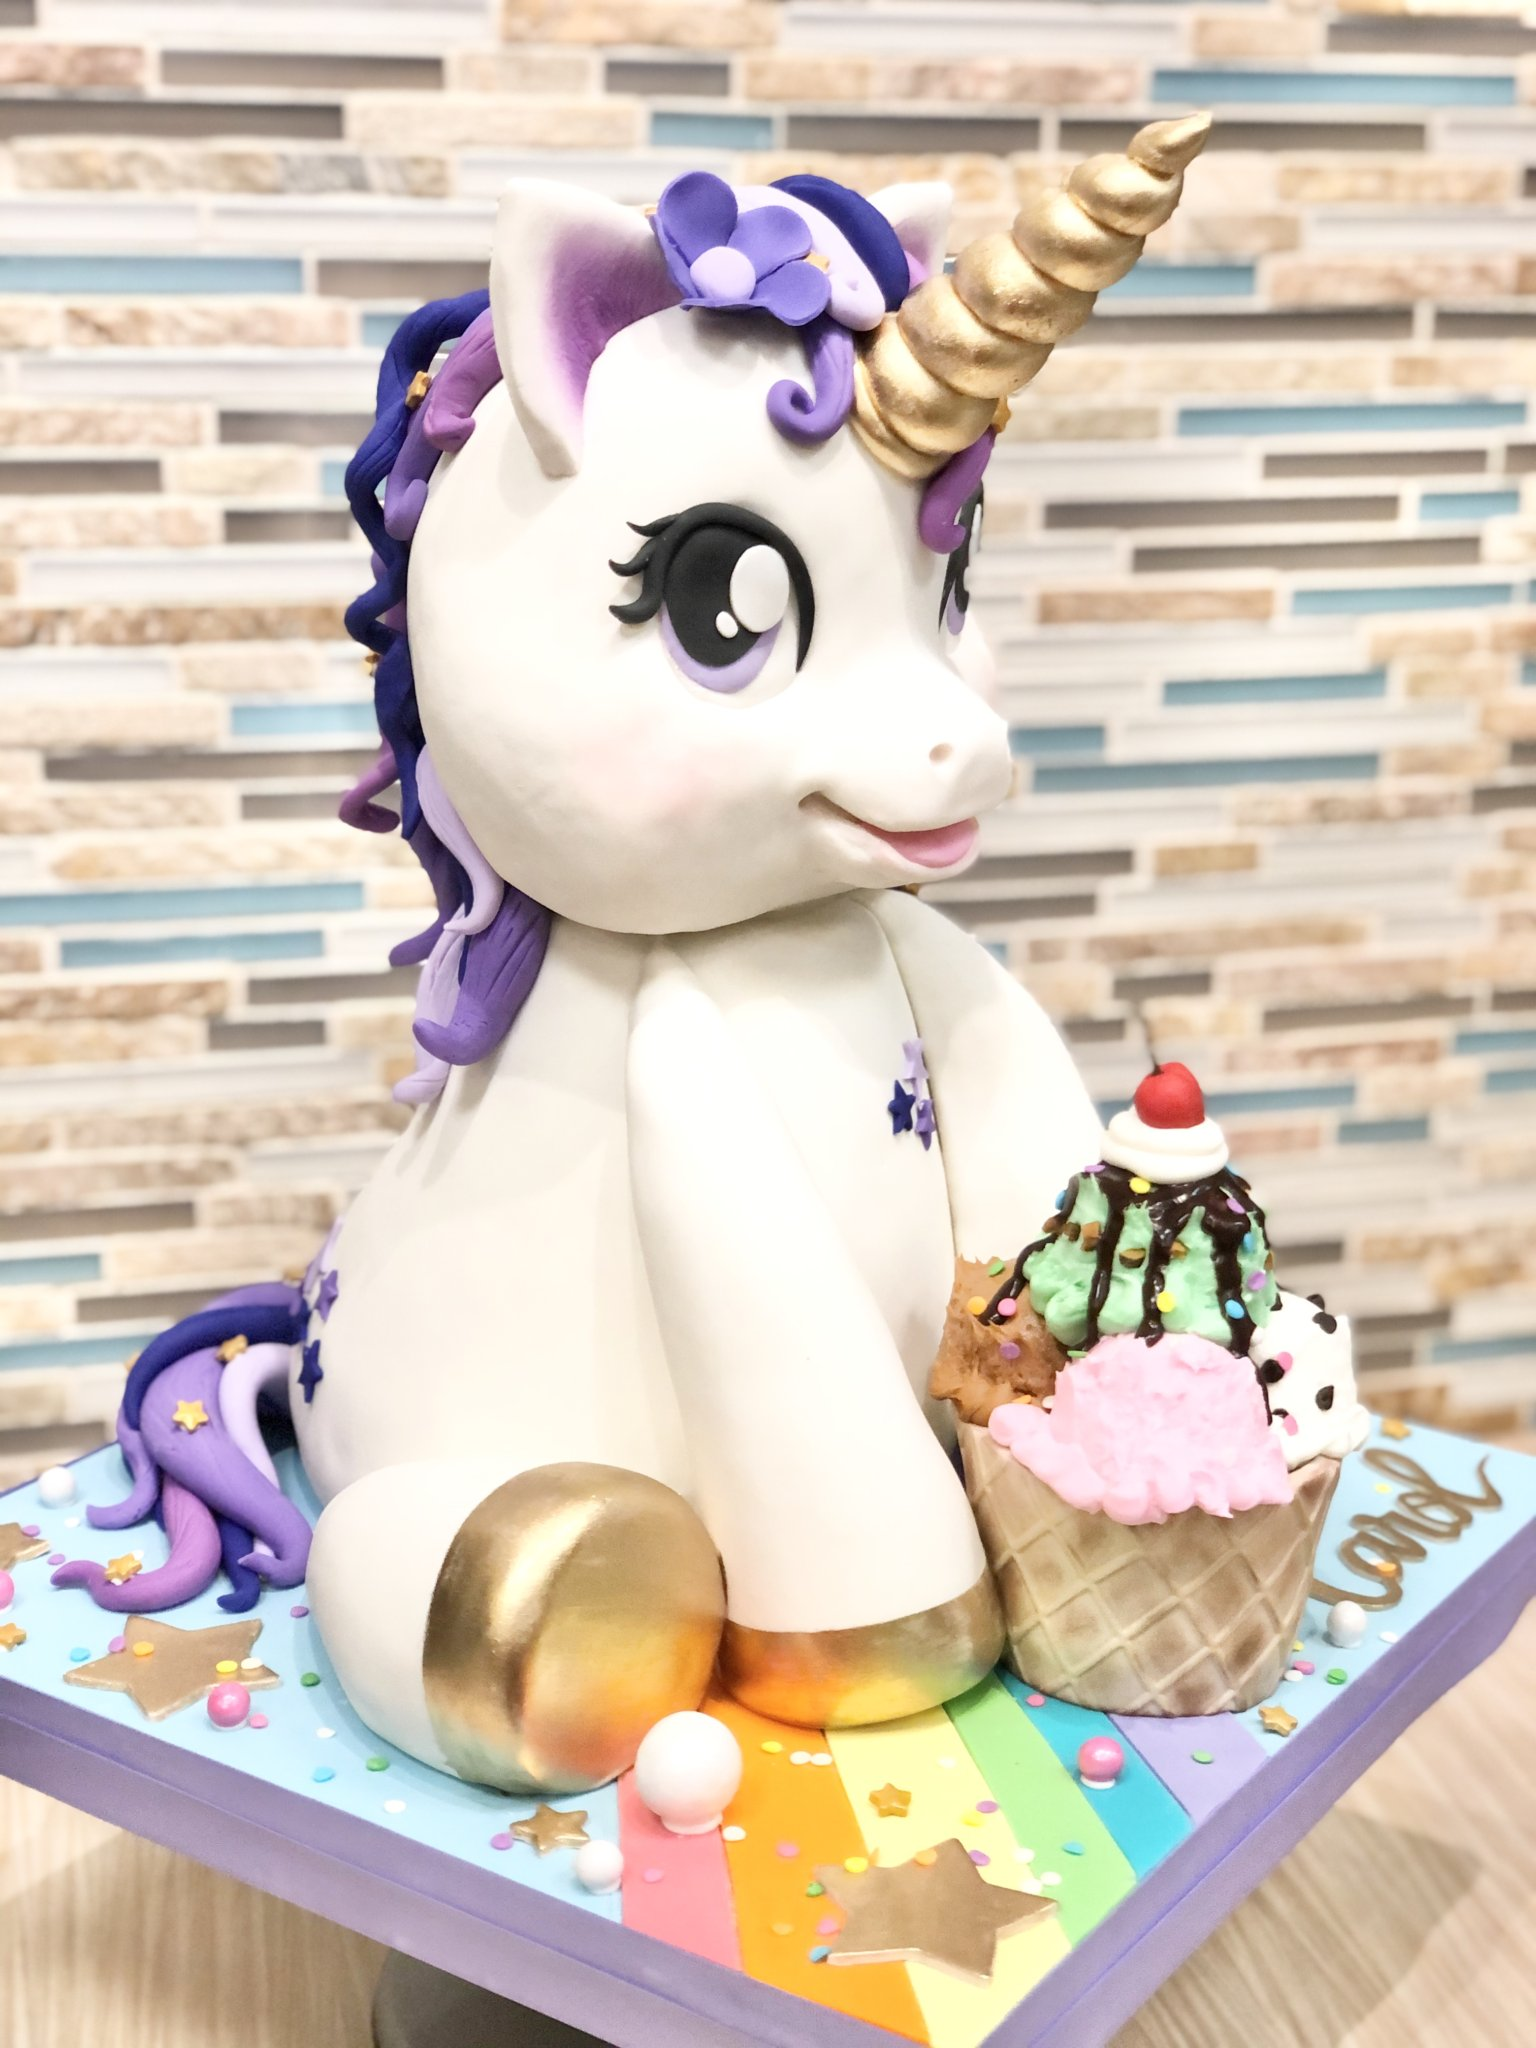 3D Sculpted Unicorn Cake